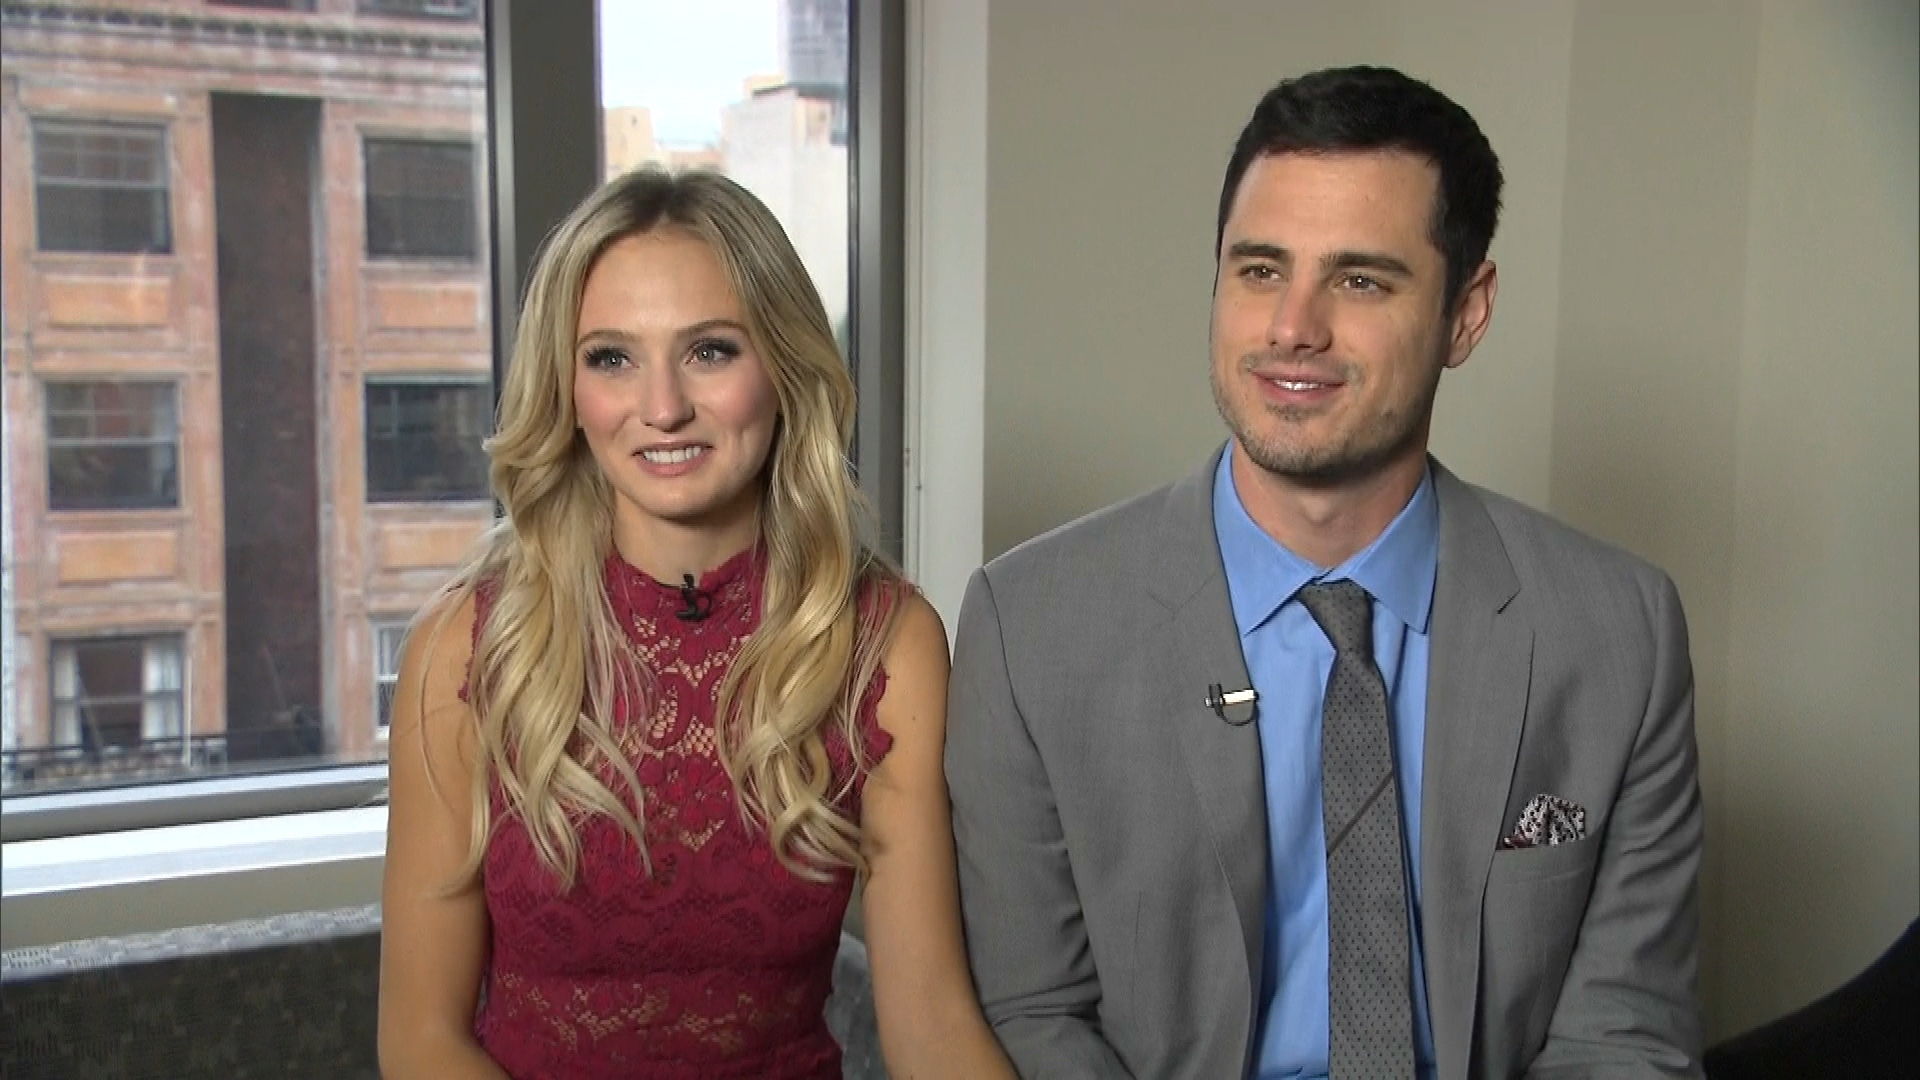 Ben Higgins and Lauren Bushnell's First Date in Public